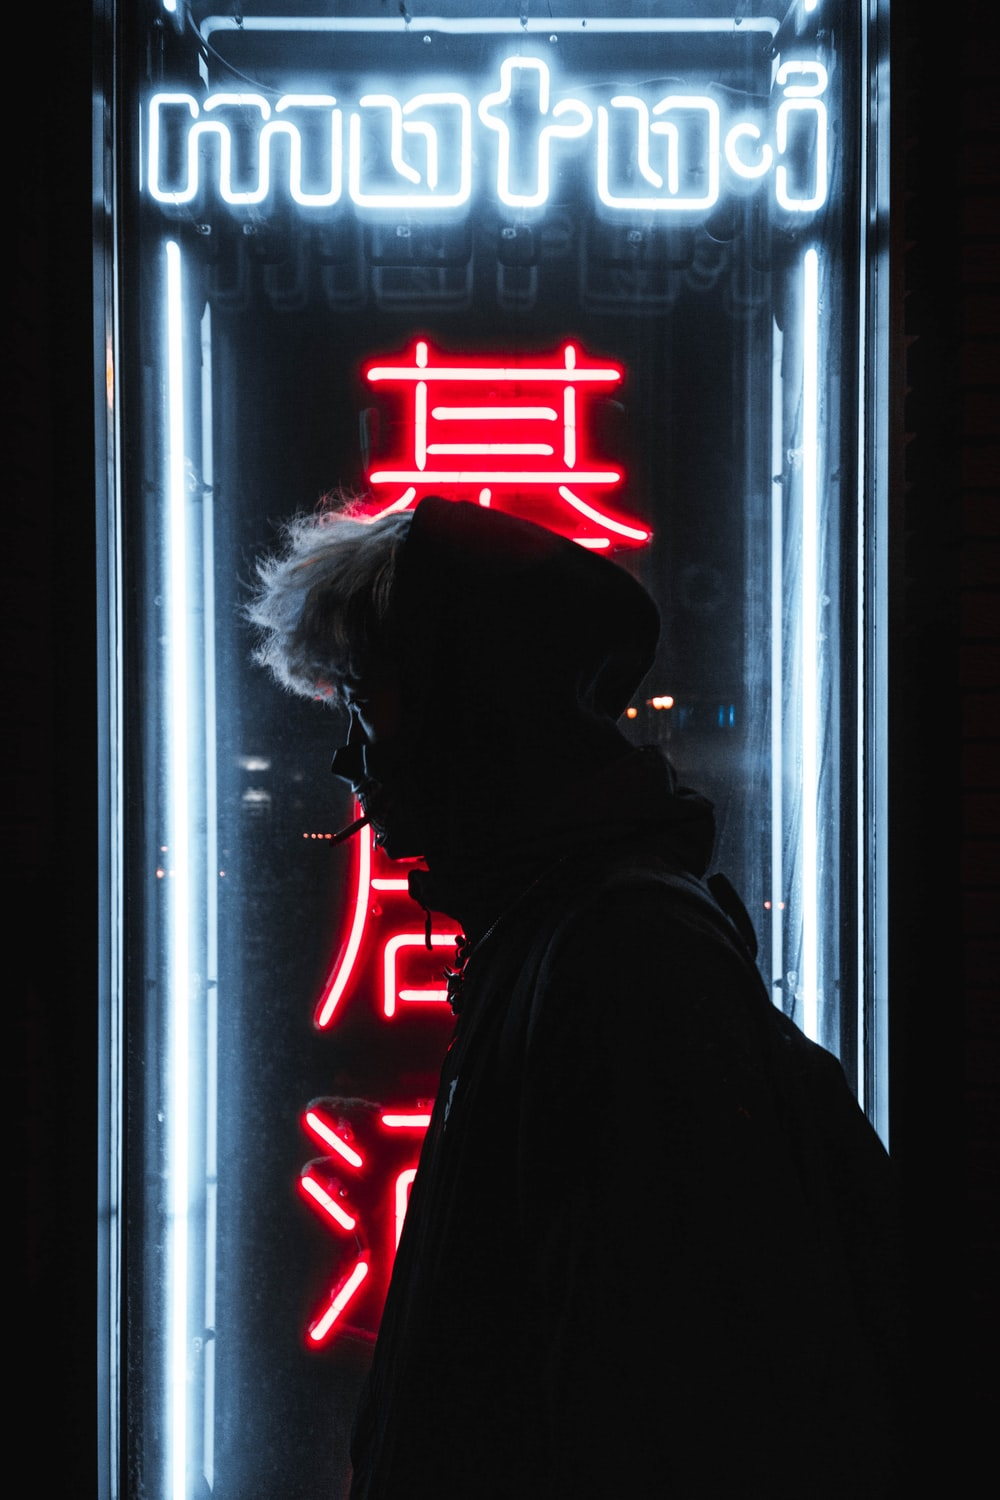 silhouette of person standing in front of neon sign